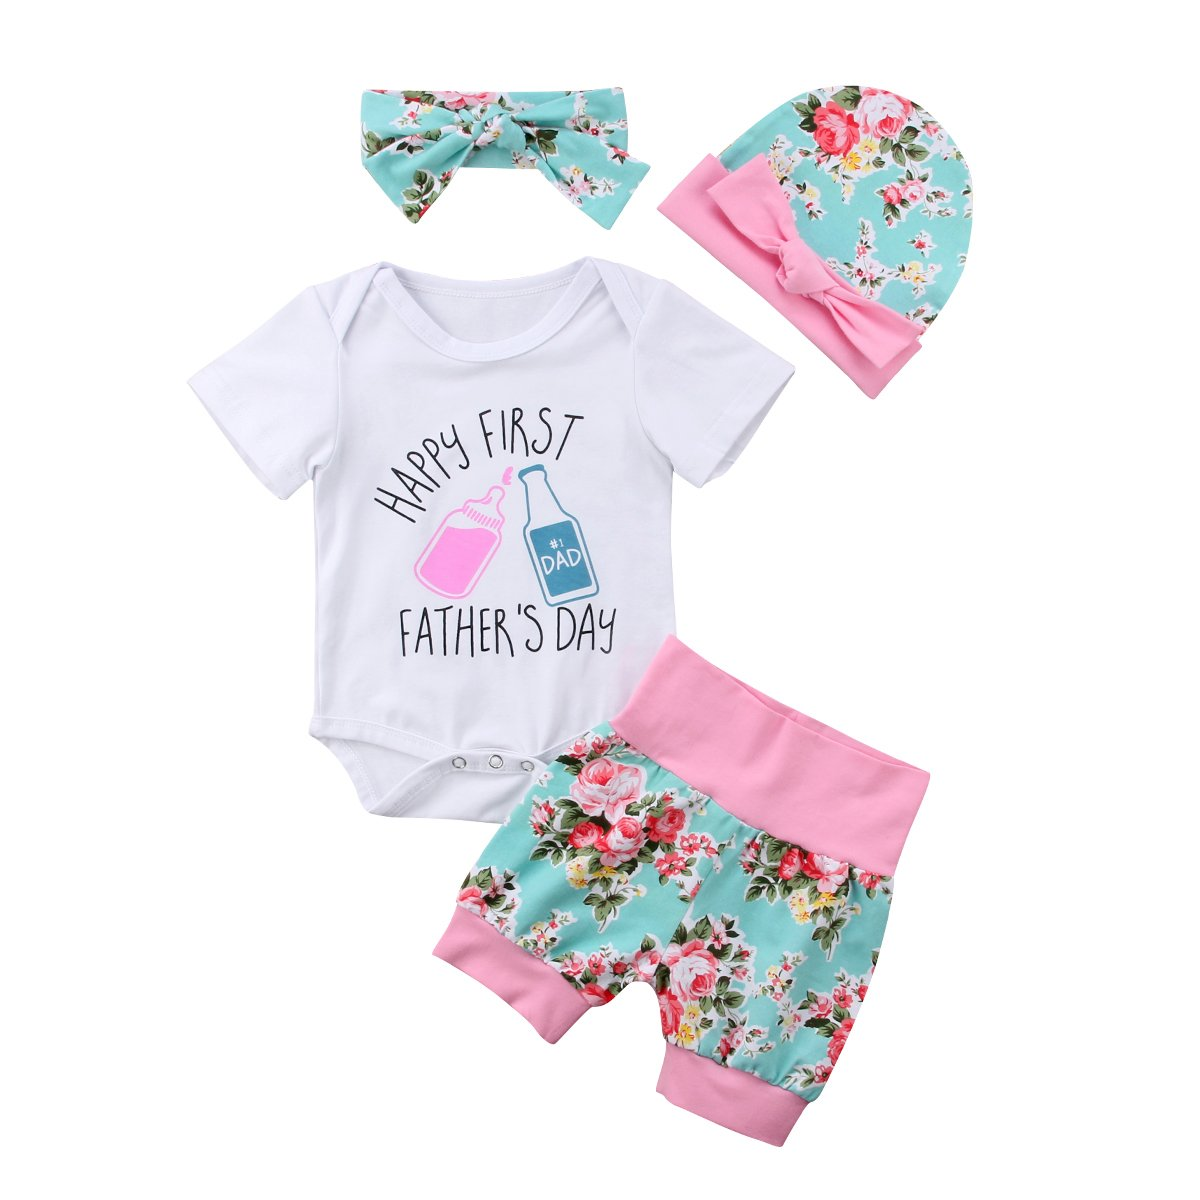 Floral Short Newborn Baby Casual Clothing Set for Mothers Day Fathers Day Round Neck Short Sleeve White Romper Hat Outfits Set 3 Pieces 0-24 Months